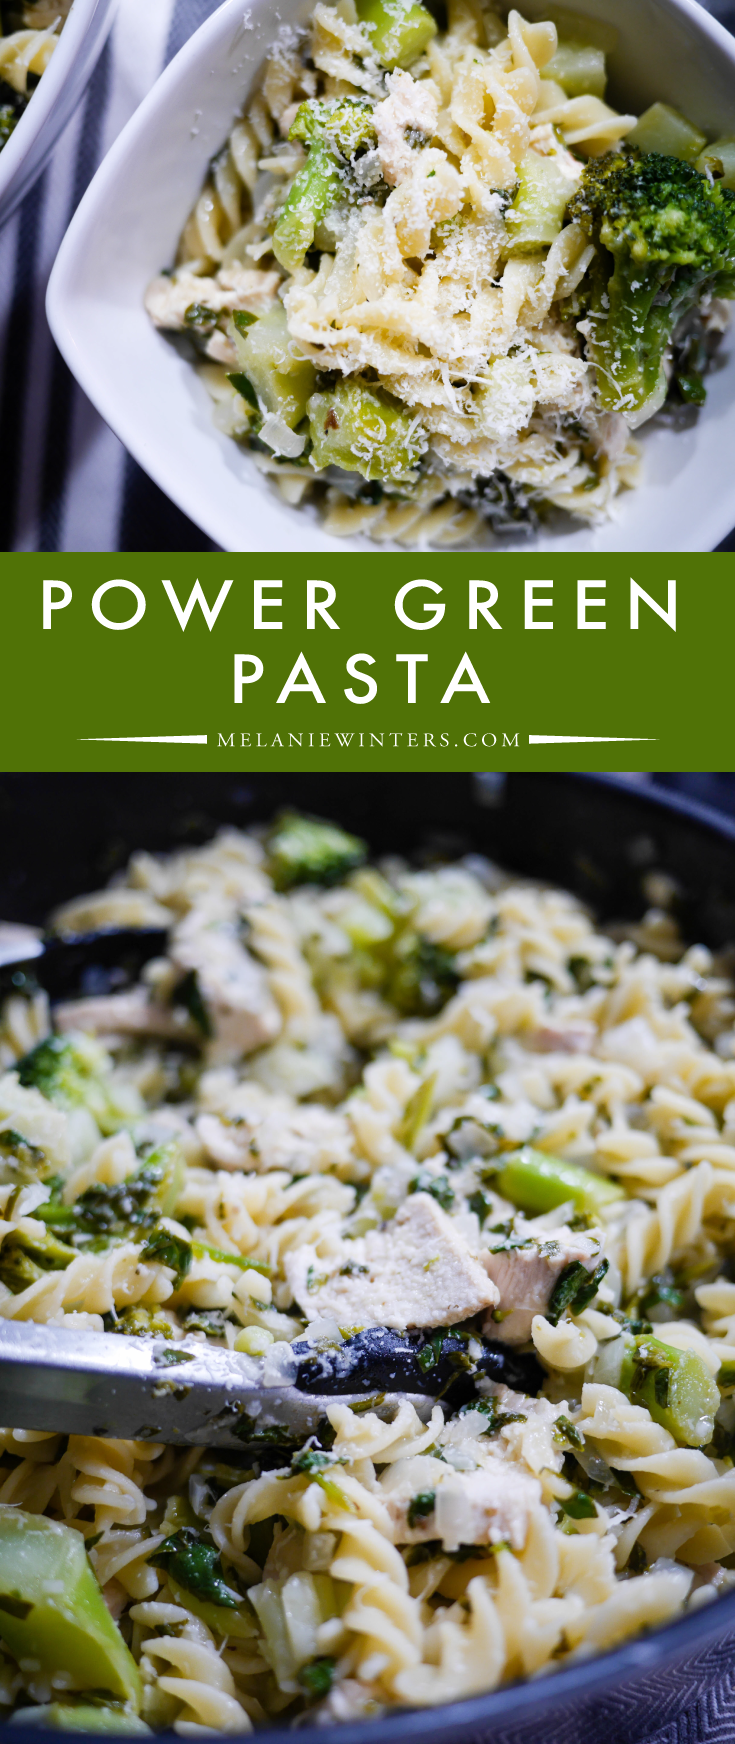 Packed full of green goodness and tossed in a light garlic sauce, this pasta is a delicious way to eat your veggies!